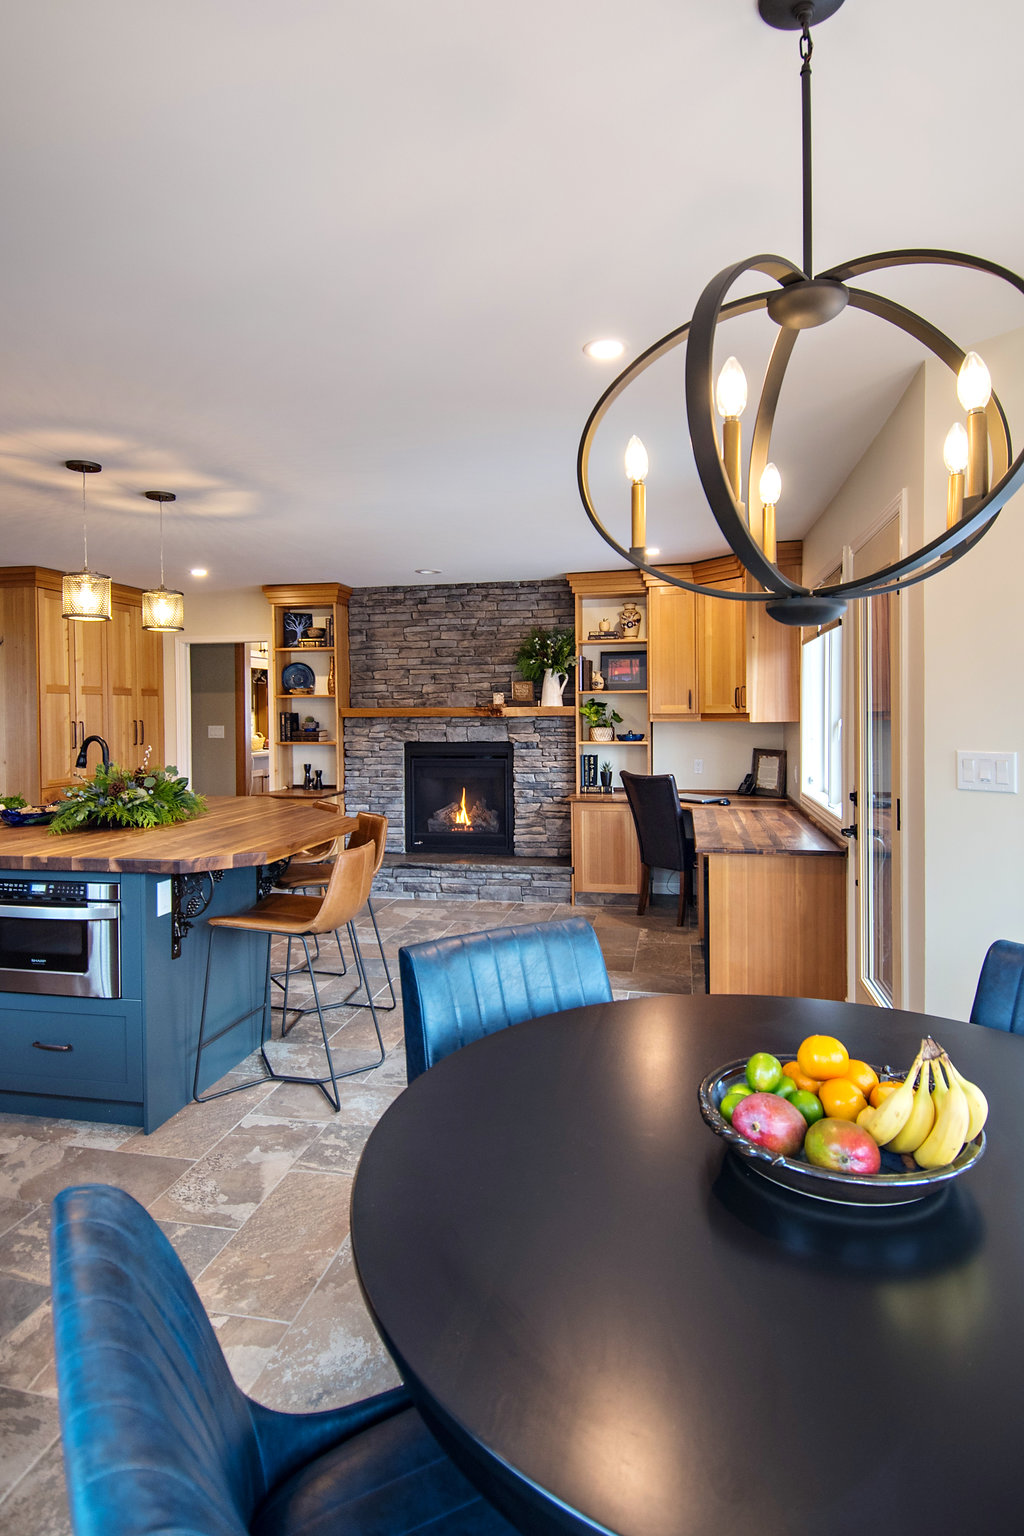 interior-designs-by-adrienne-cranbrook-bc-rustic-kitchen-wood-cabinets-stone-fireplace